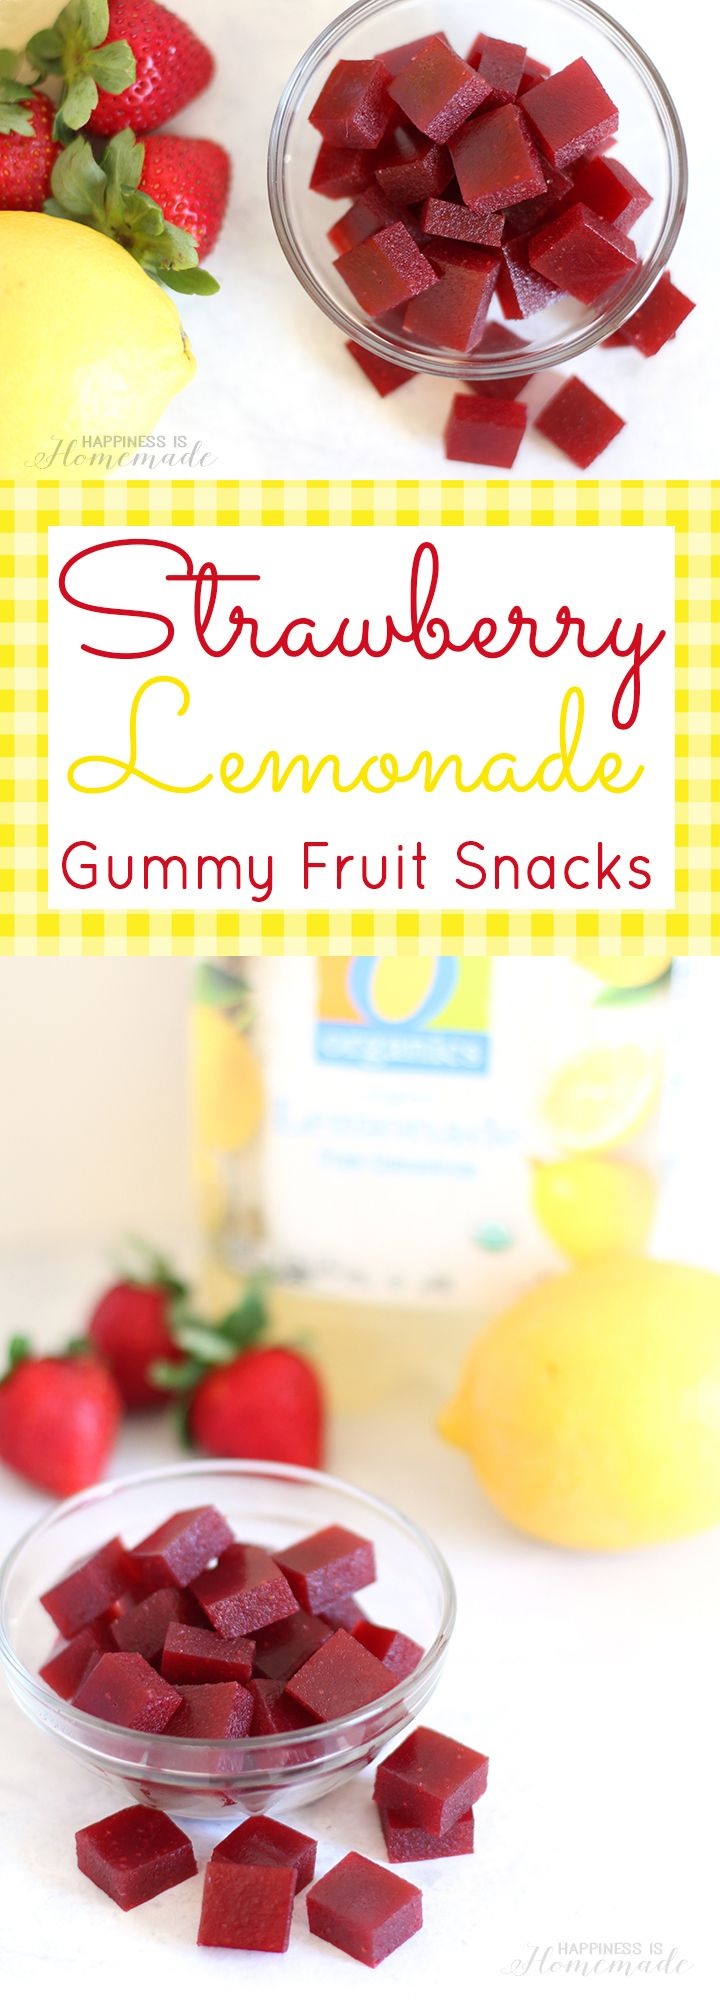 Homemade Organic Strawberry Lemonade Gummy Fruit Snacks Recipe                                                                                                                                                                                 More